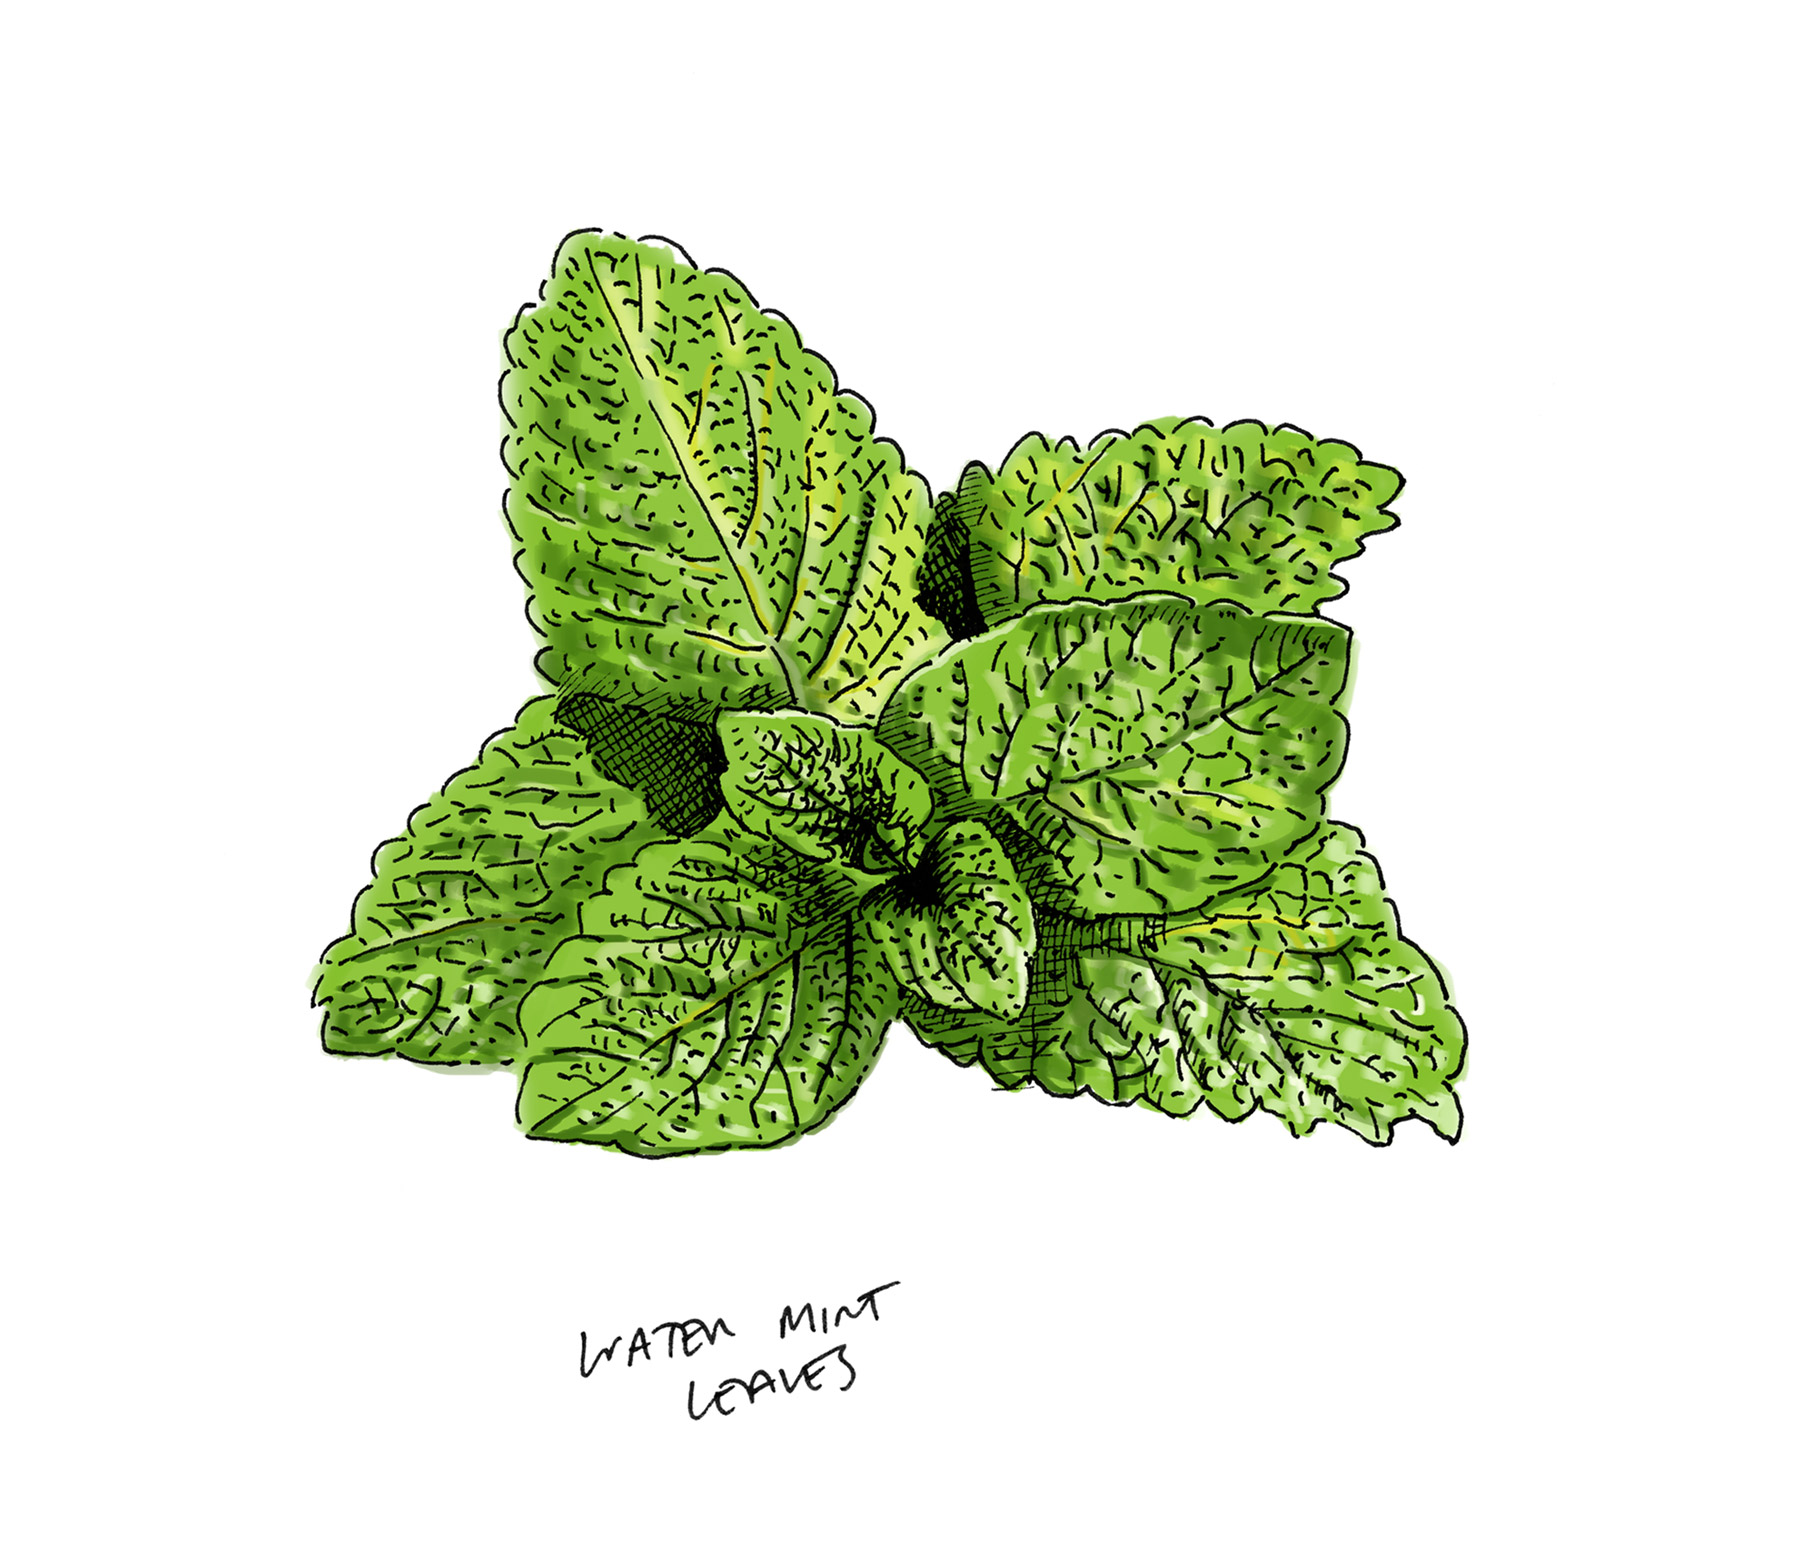 Lussa Gin Water Mint Leaves Illustration